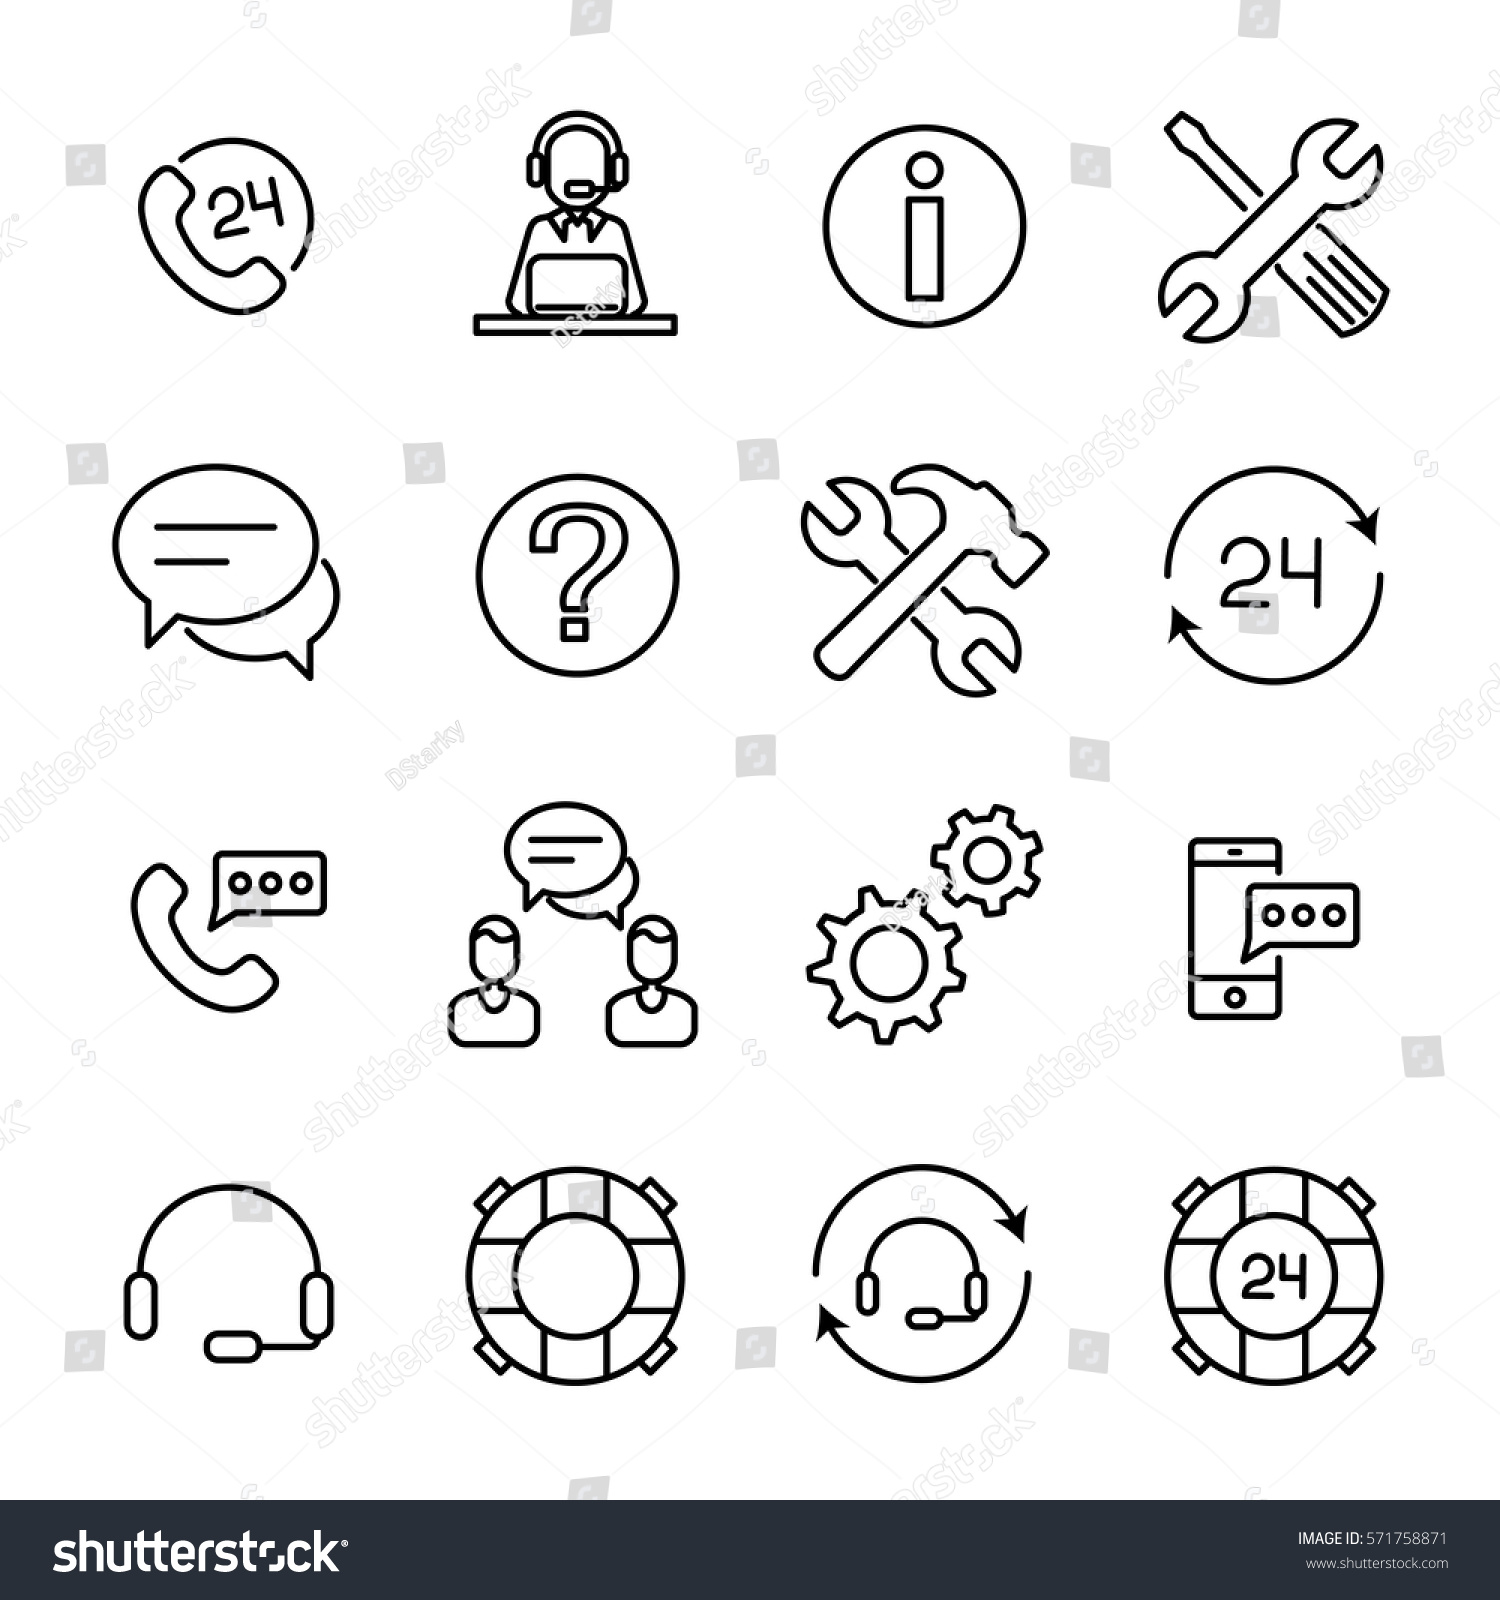 Set online support icons modern thin stock vector 571758871 set of online support icons in modern thin line style high quality black outline assist biocorpaavc Images